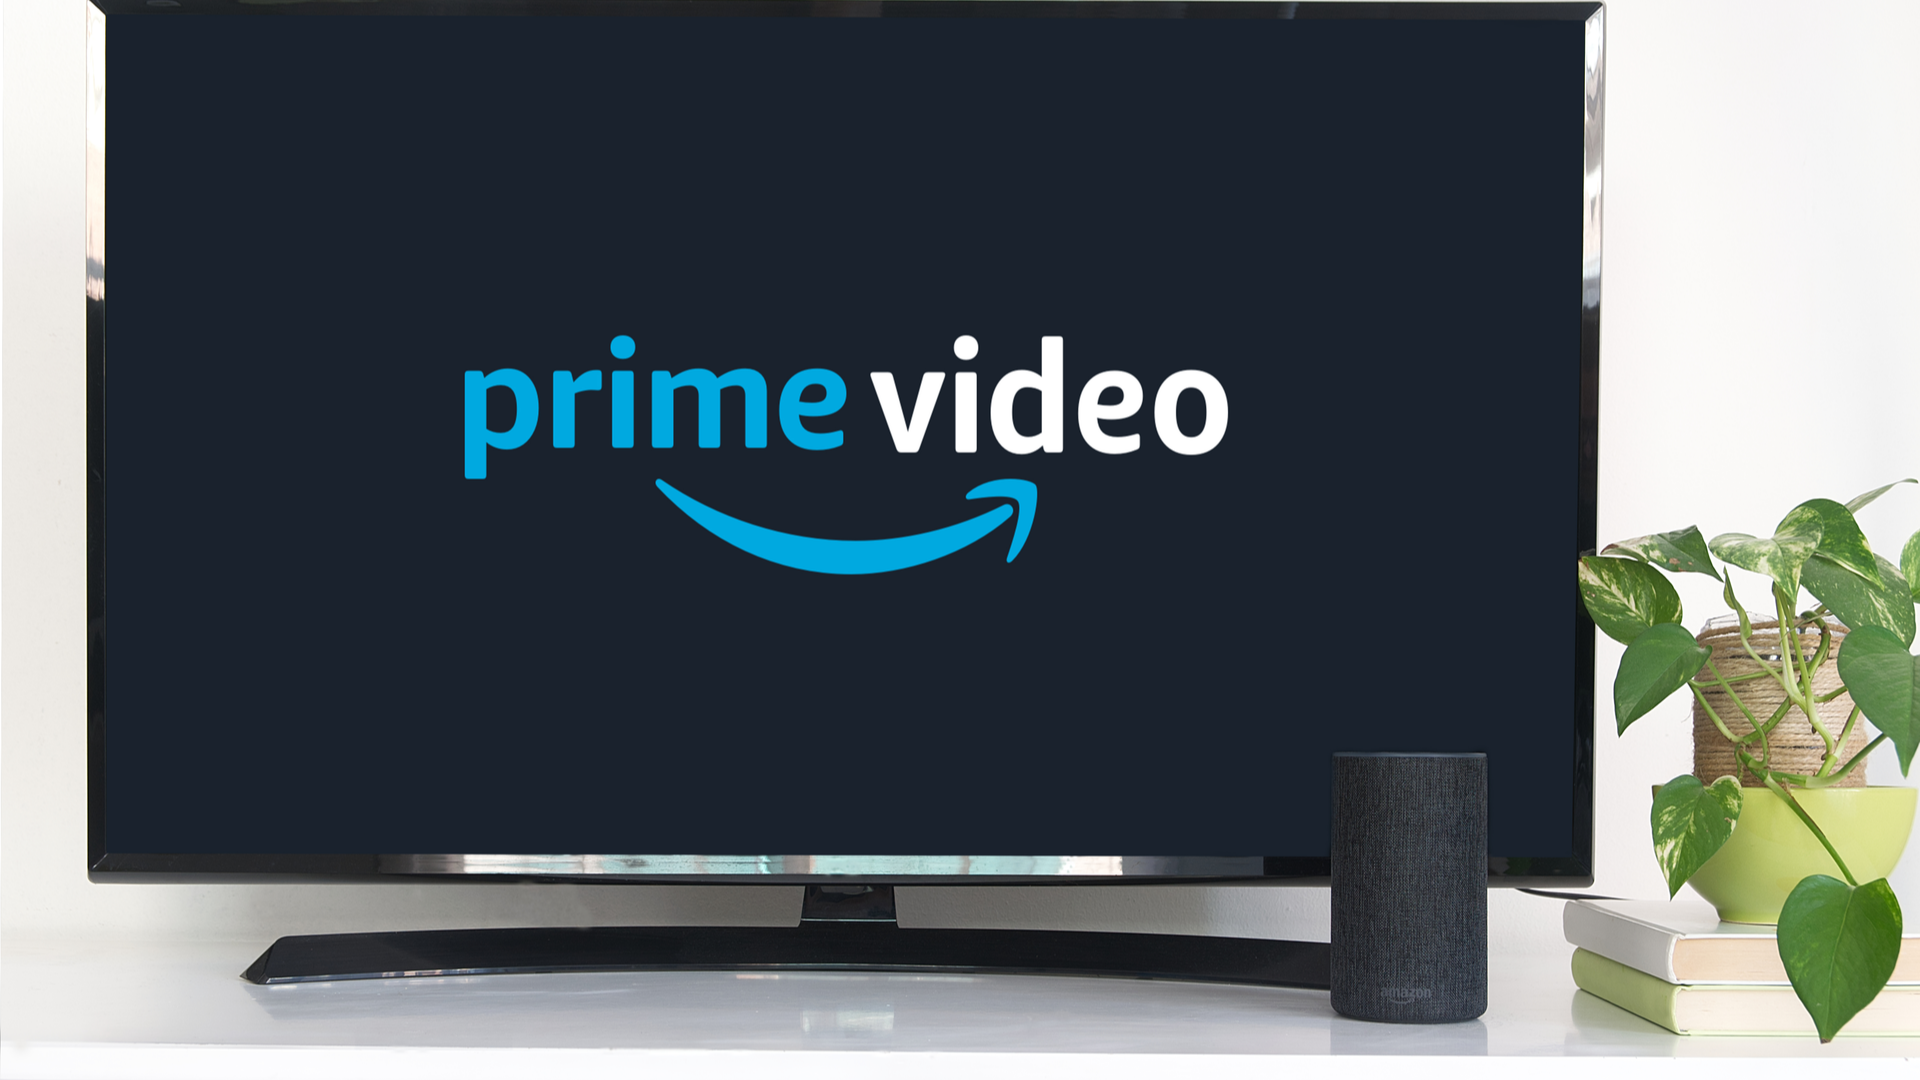 Smart TV with the Prime Video service app on it